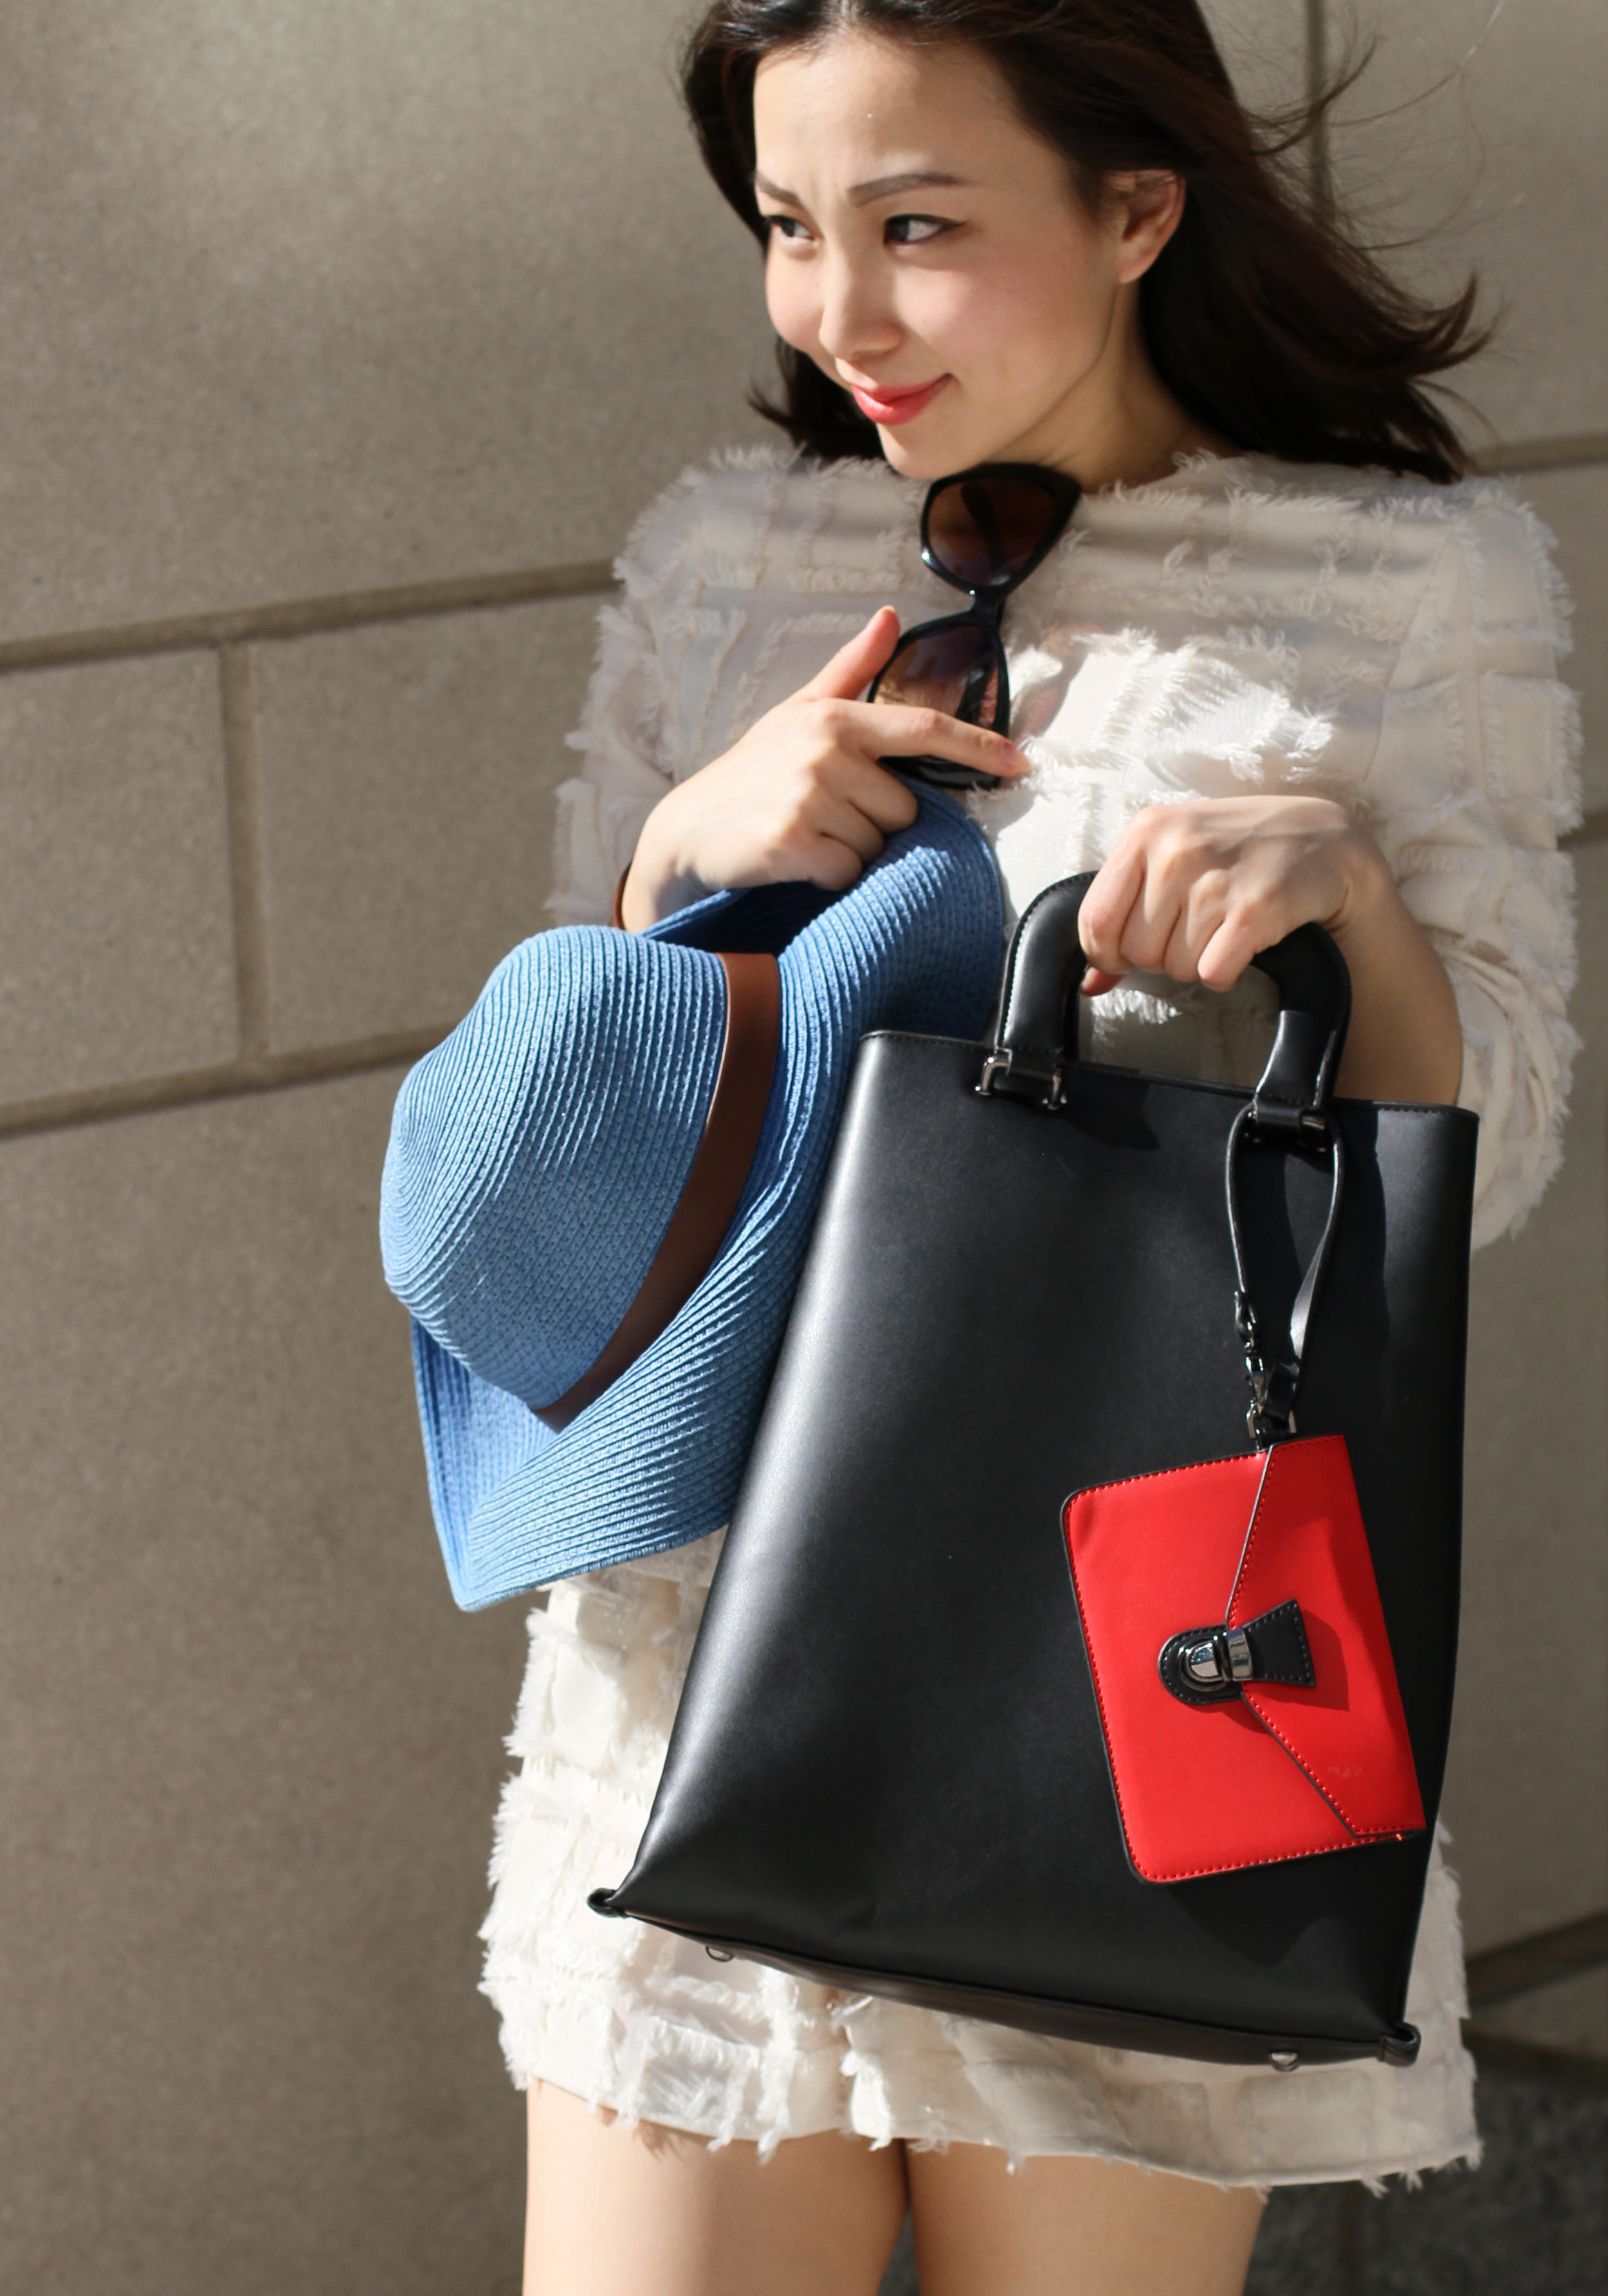 black leather tote bag.jpg